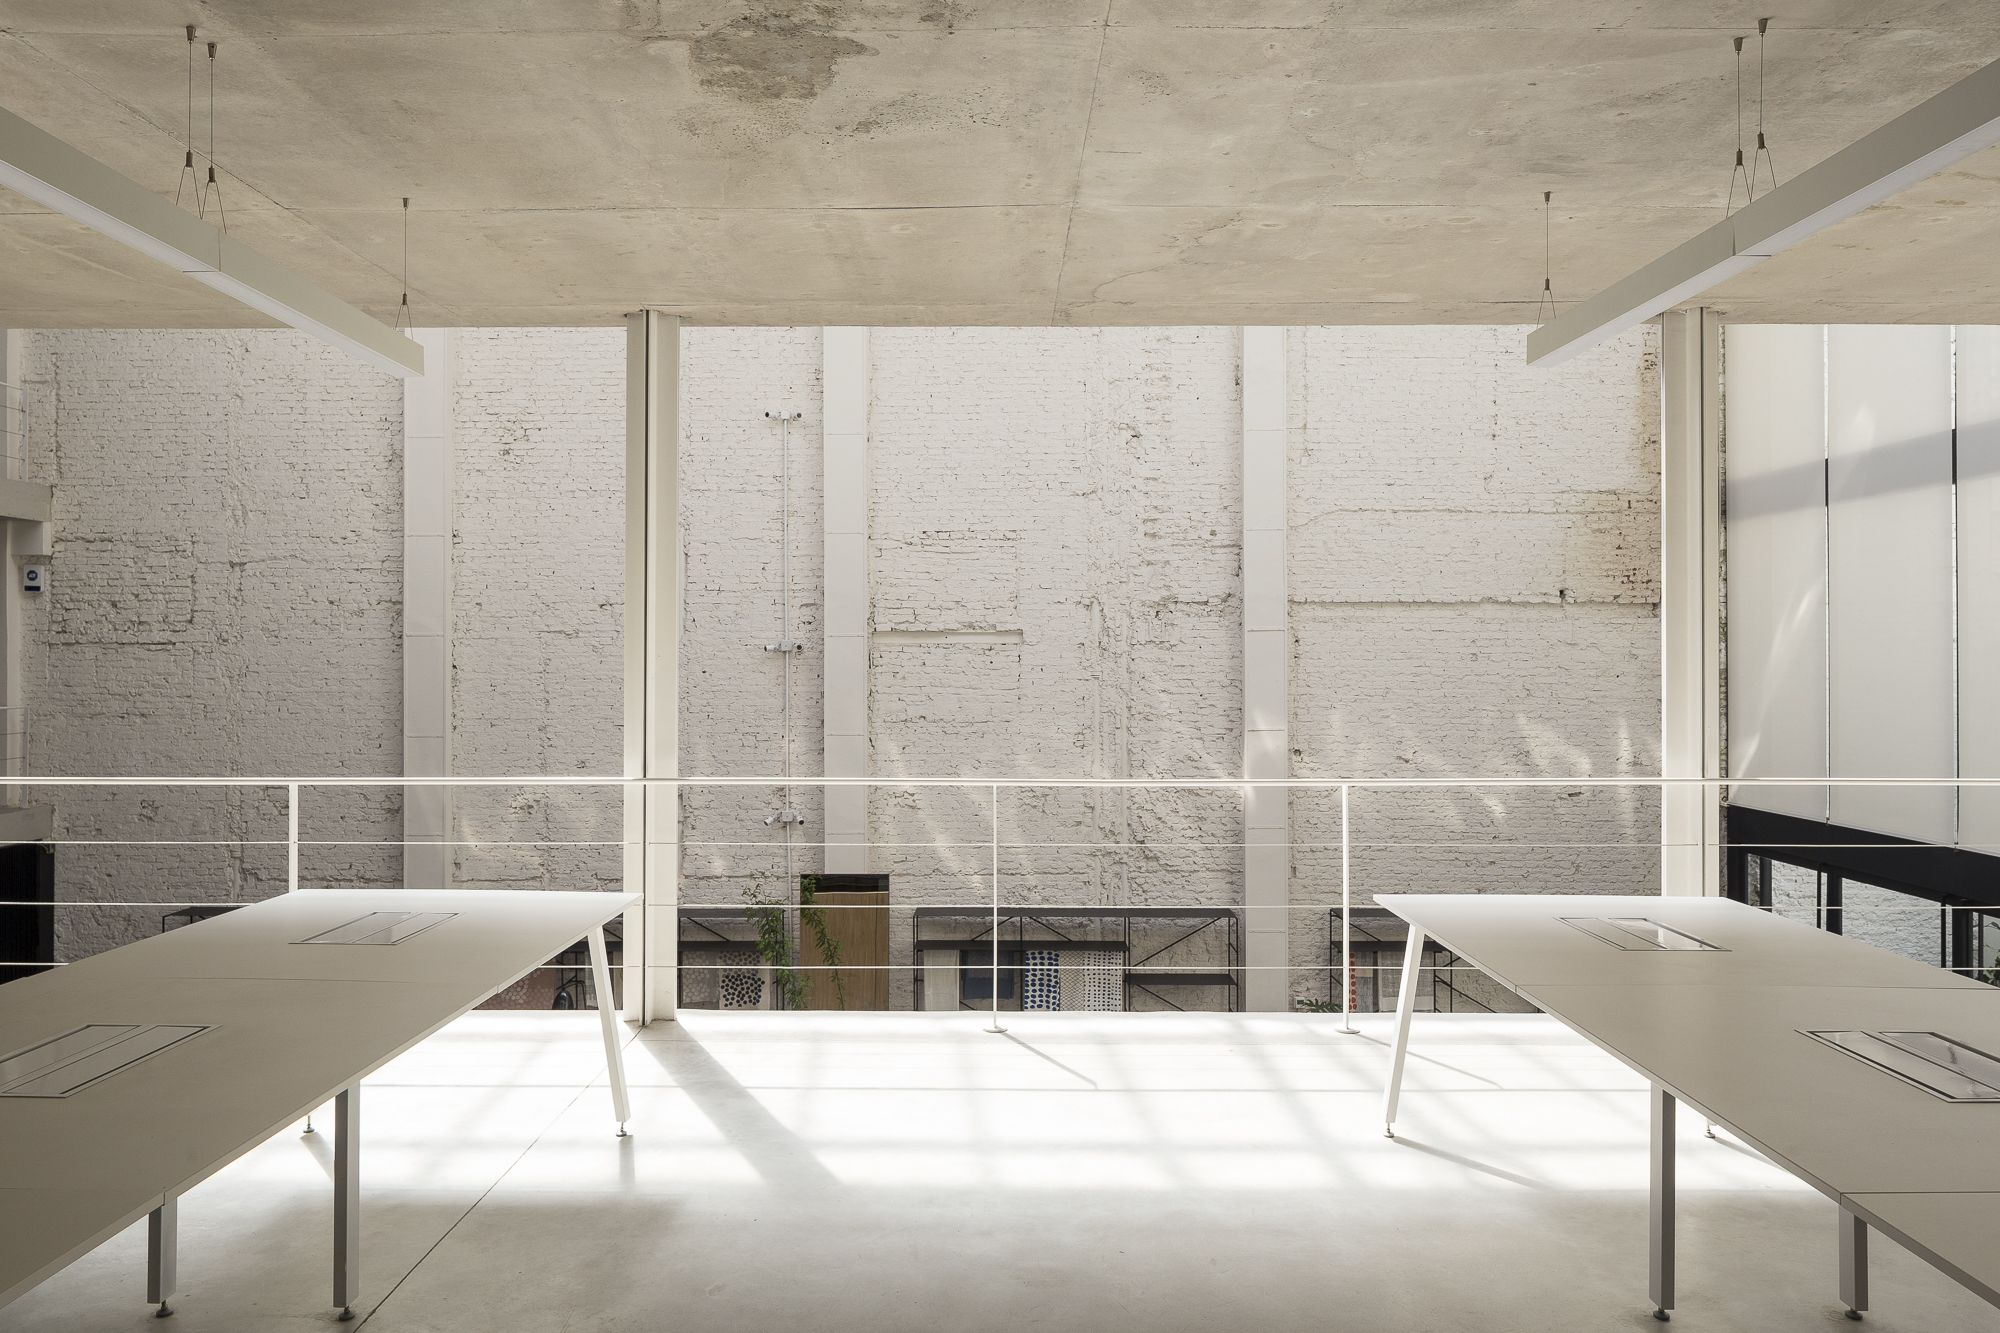 Officina Soler Buenos Aires, Textile Showroom + Office by Ana Smud, Camila Jalife + Sasha Molczadzki | Yellowtrace